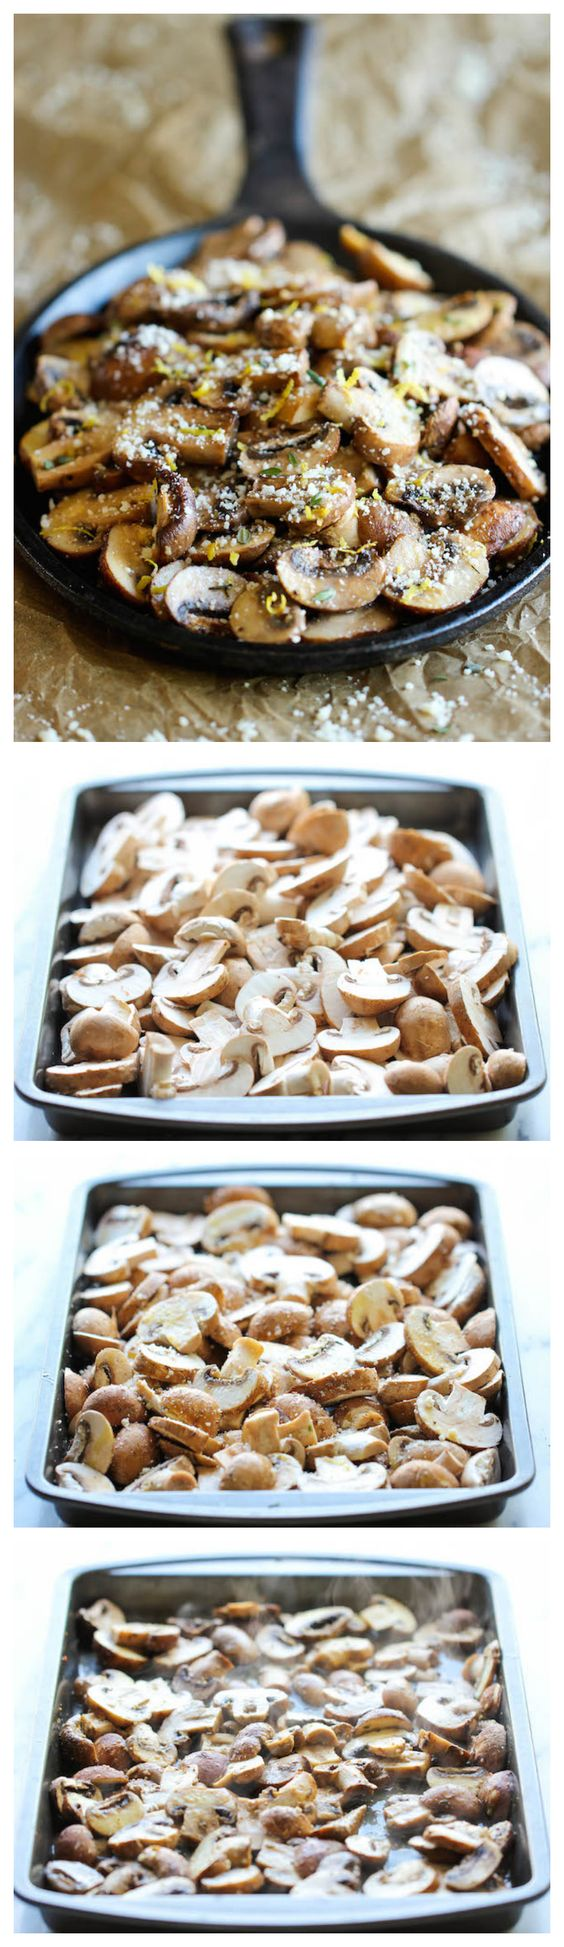 Baked Parmesan Mushrooms by damndelicious #Mushrooms #Parmesan #Easy: